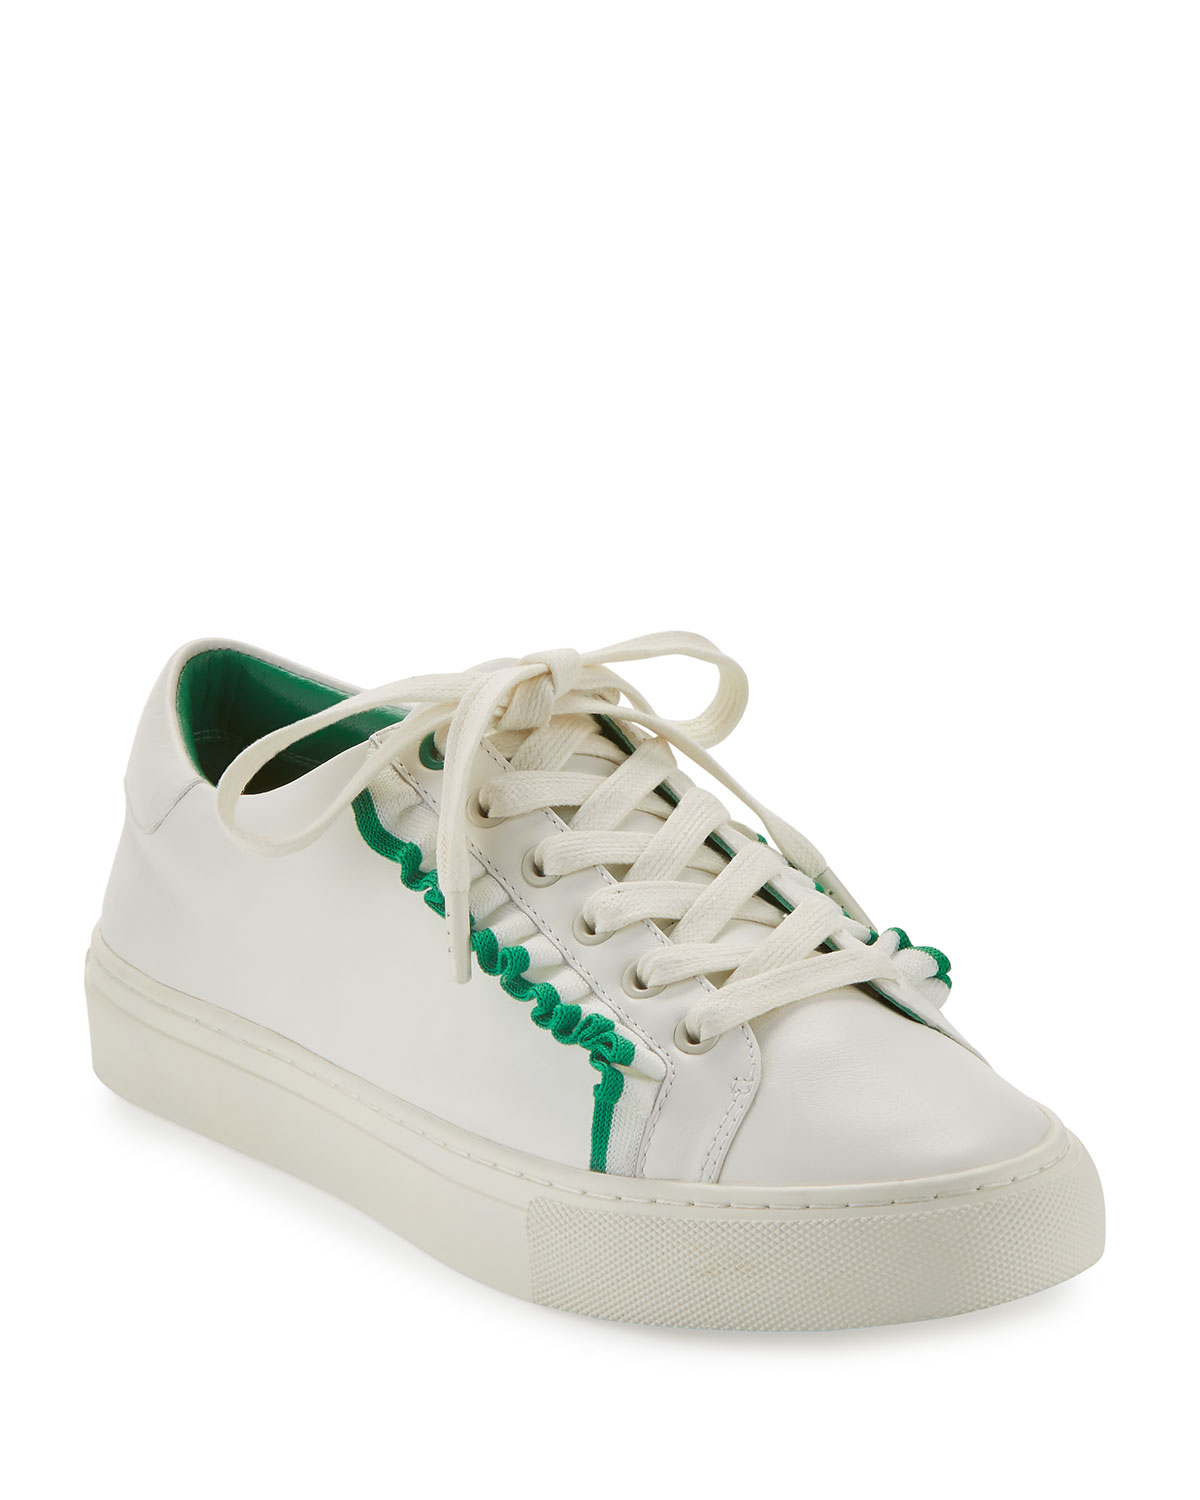 Tory Burch Woman Metallic-trimmed Leather Sneakers White Size 10.5 Tory Burch Zlamifp